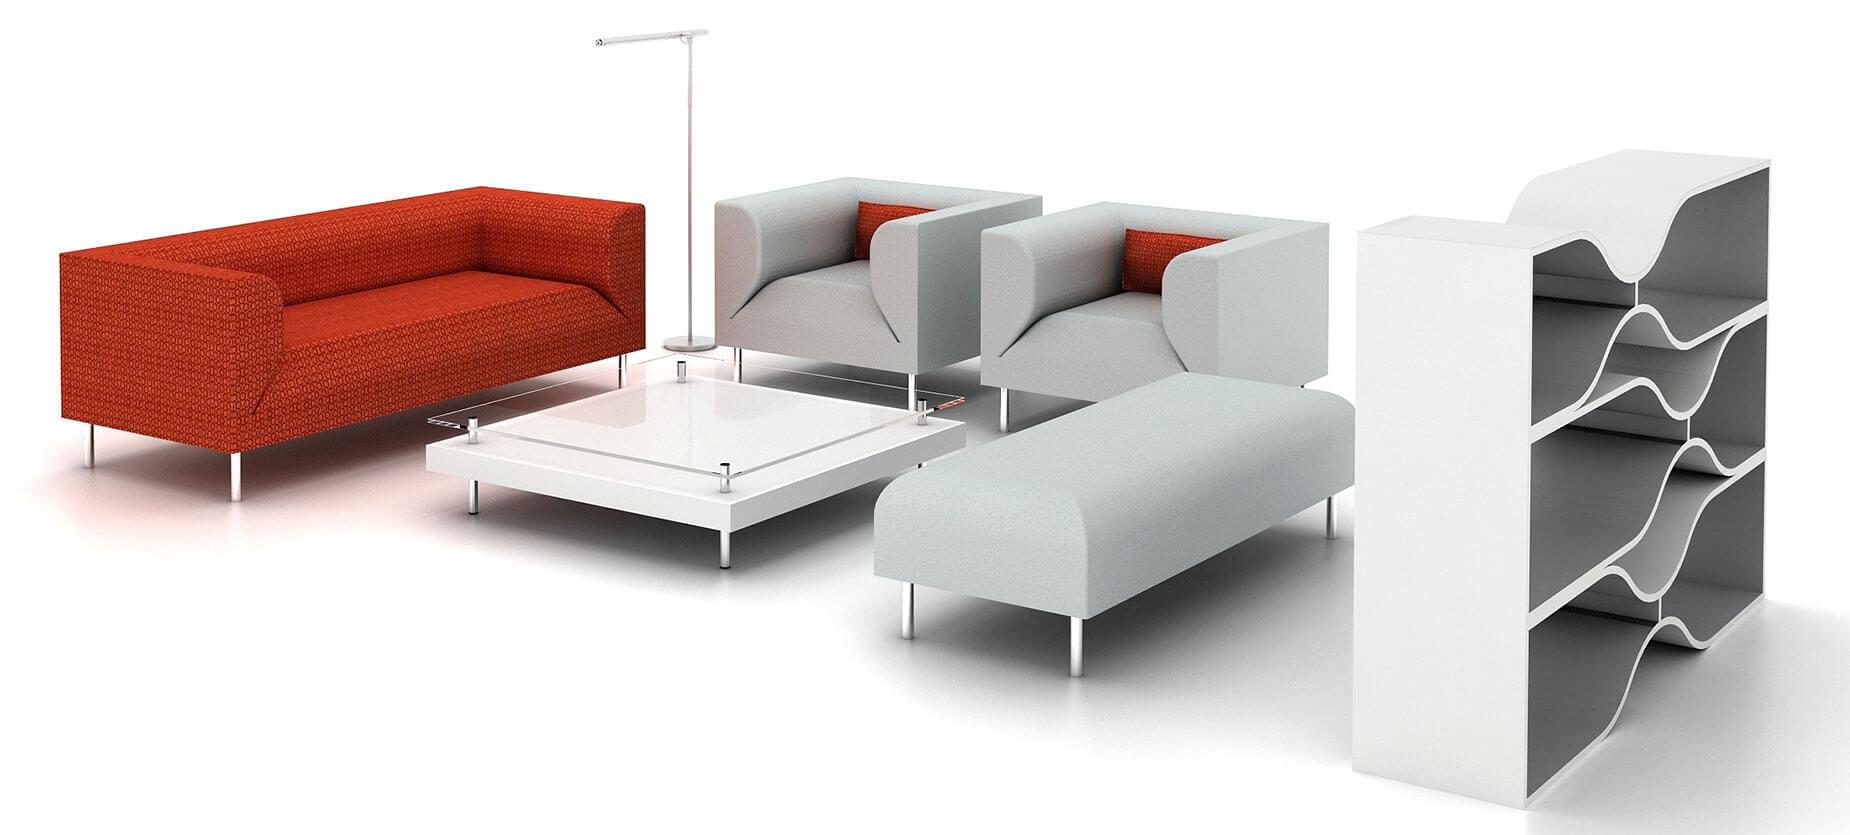 Q_Bic Lounge Seating